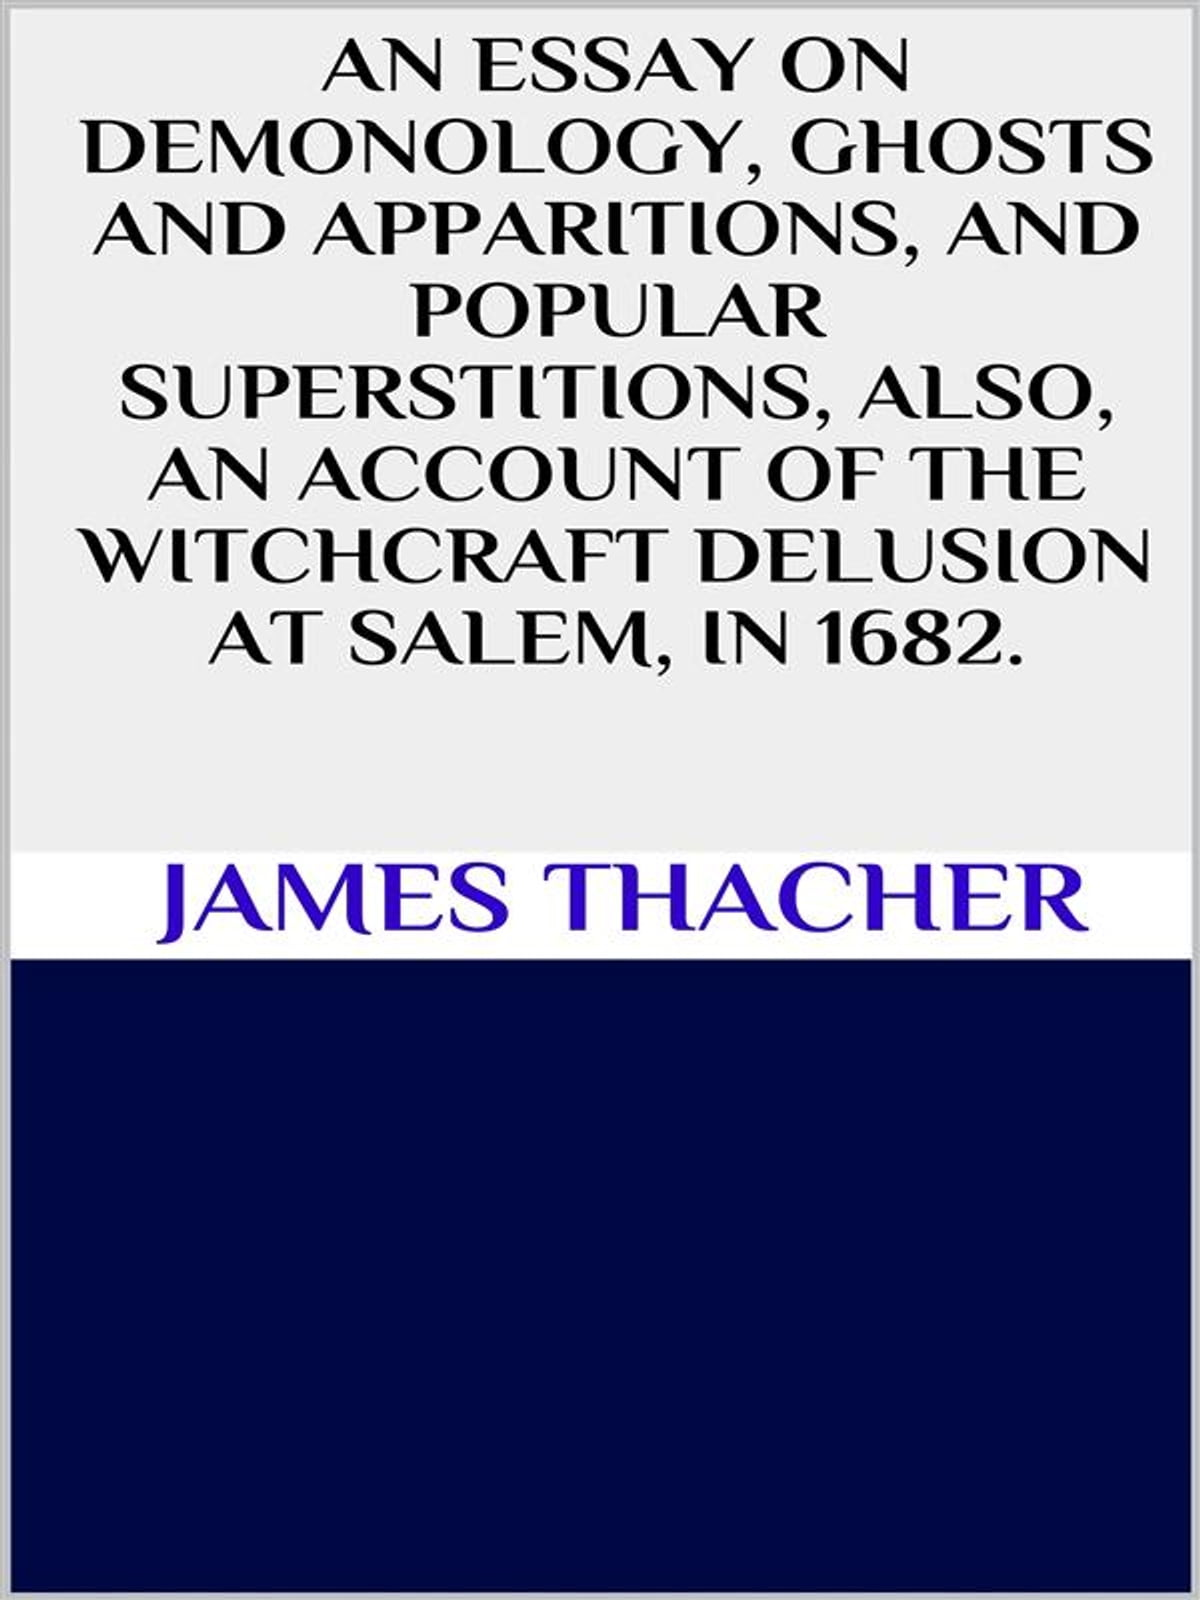 An Essay On Demonology Ghosts And Apparitions And Popular  An Essay On Demonology Ghosts And Apparitions And Popular Superstitions  Also An Account Of The Witchcraft Delusion At Salem In  Ebook By  James  How To Write A Thesis Sentence For An Essay also Looking For A Business Plan Writer  English Essay Internet